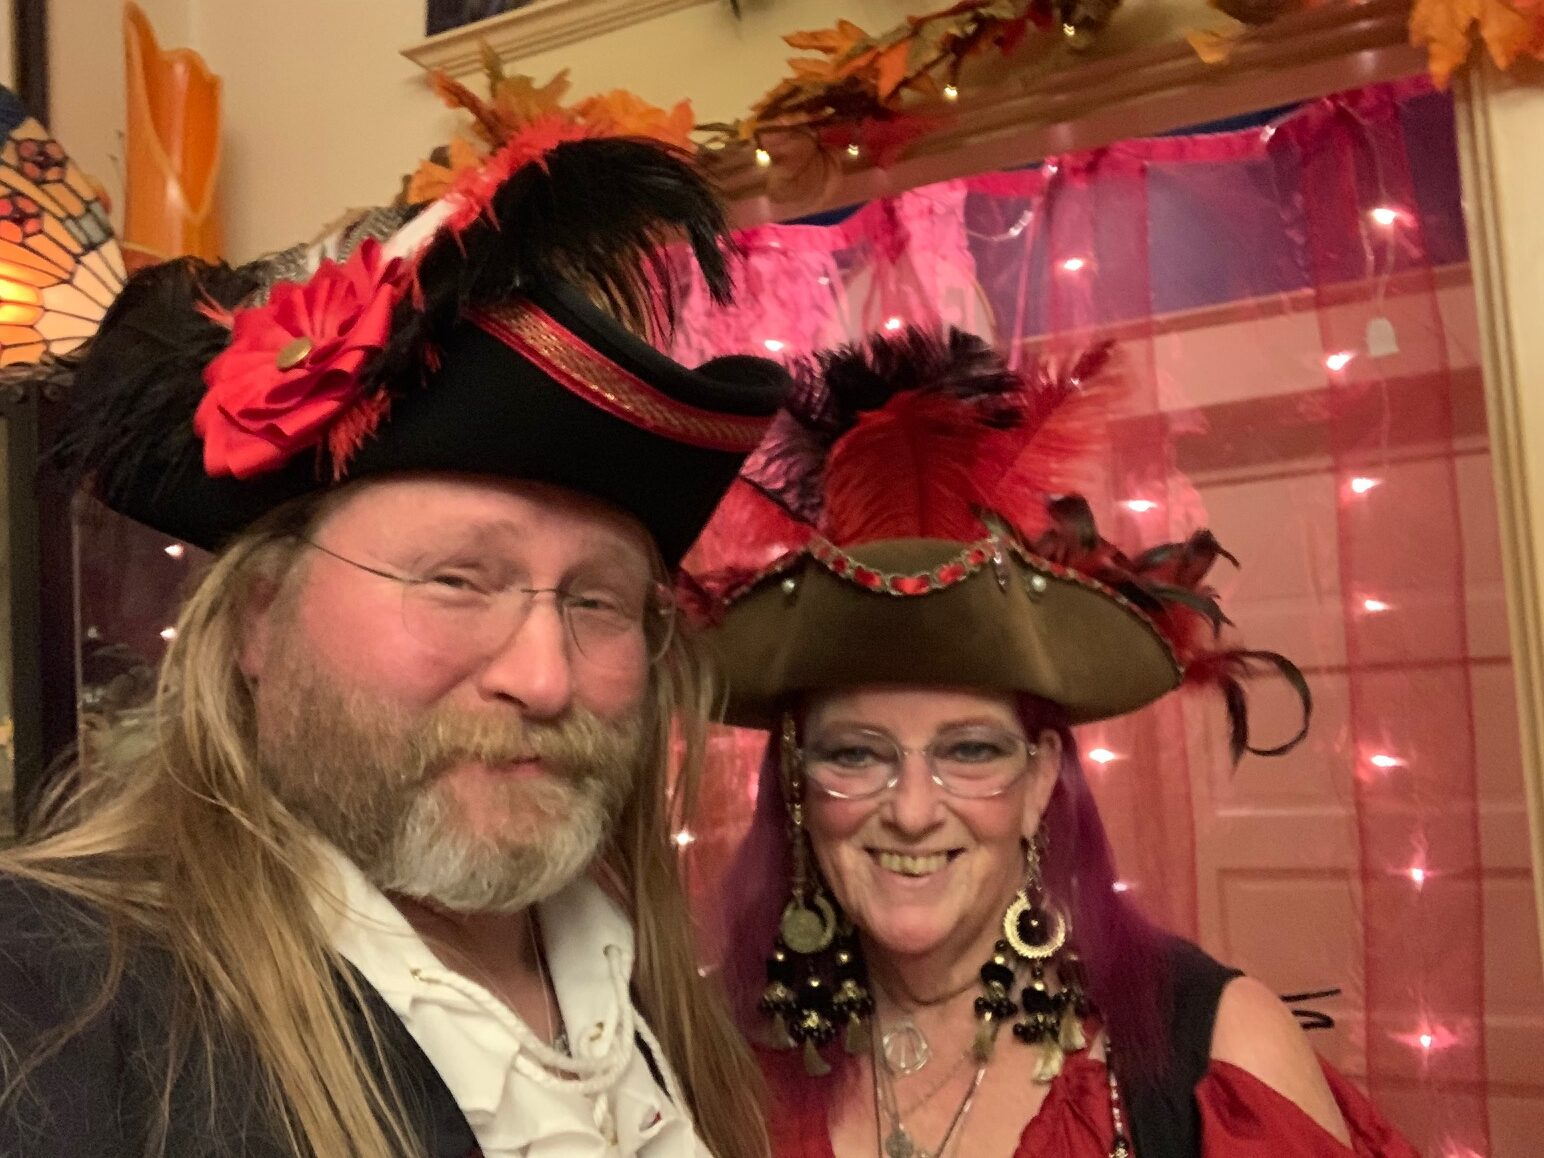 Correct Pirate Photo of Eric and Susan